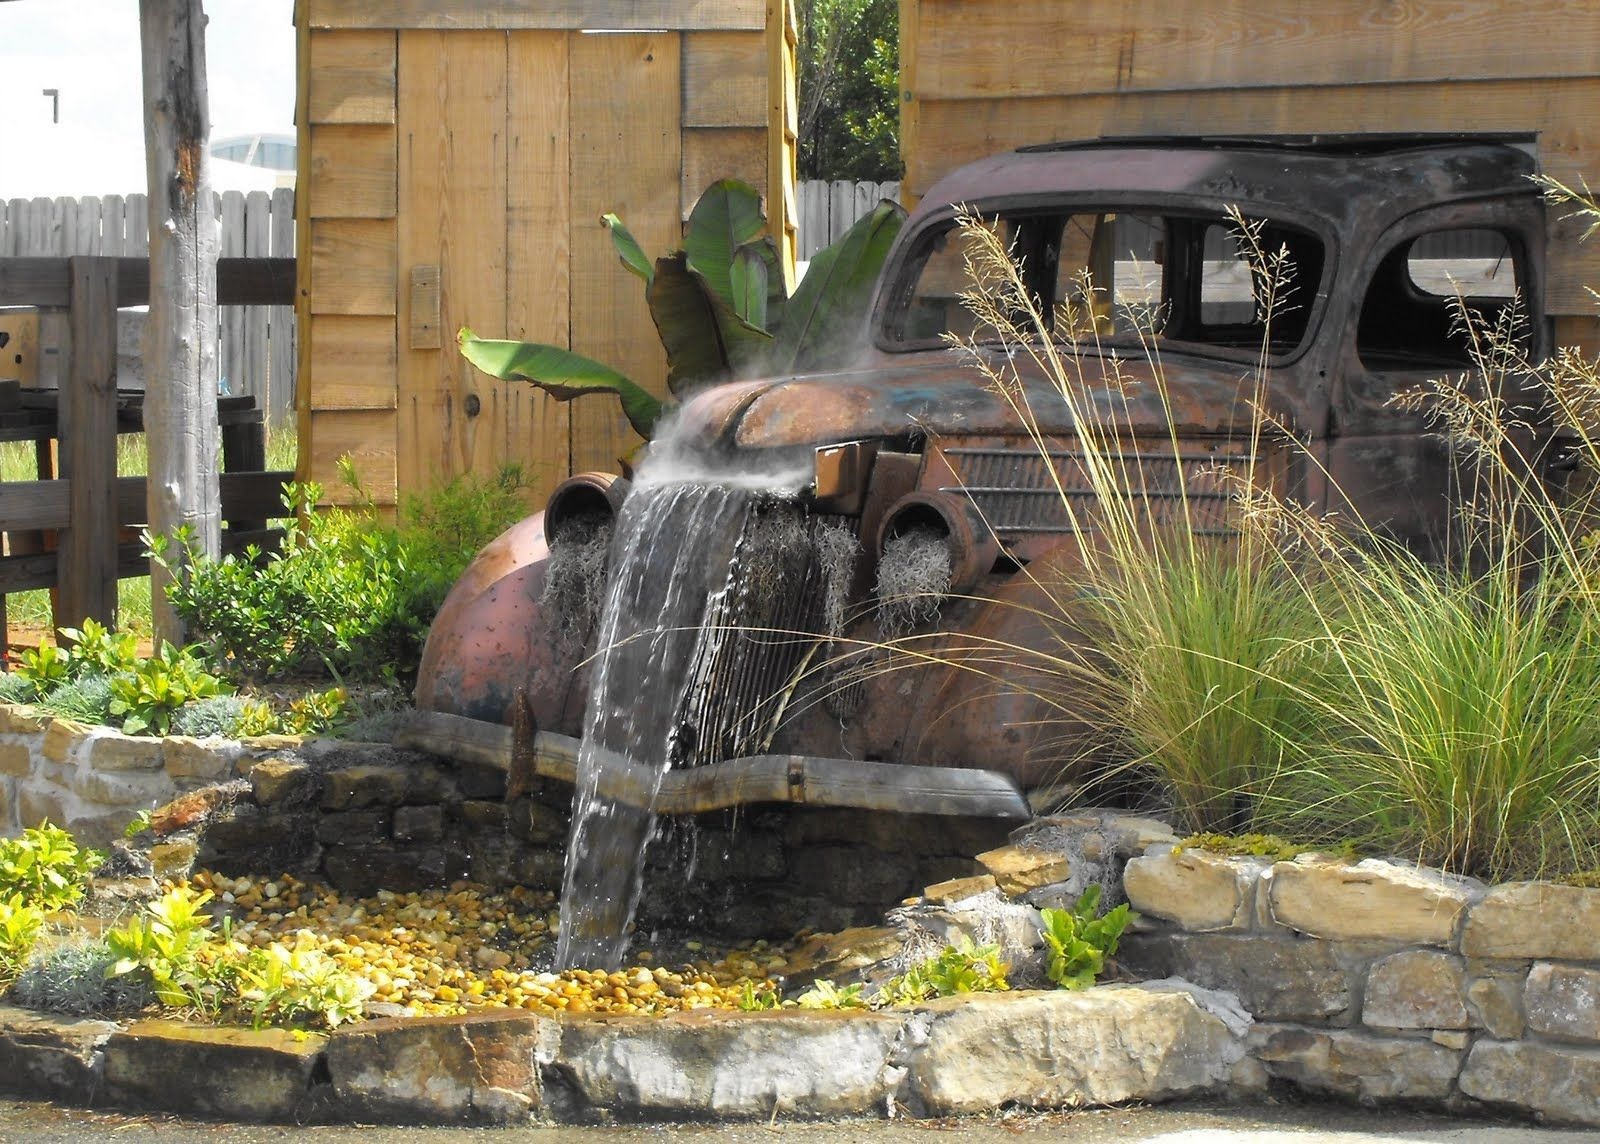 Vintage truck water feature my corner of the world my for Garden fountains and water features